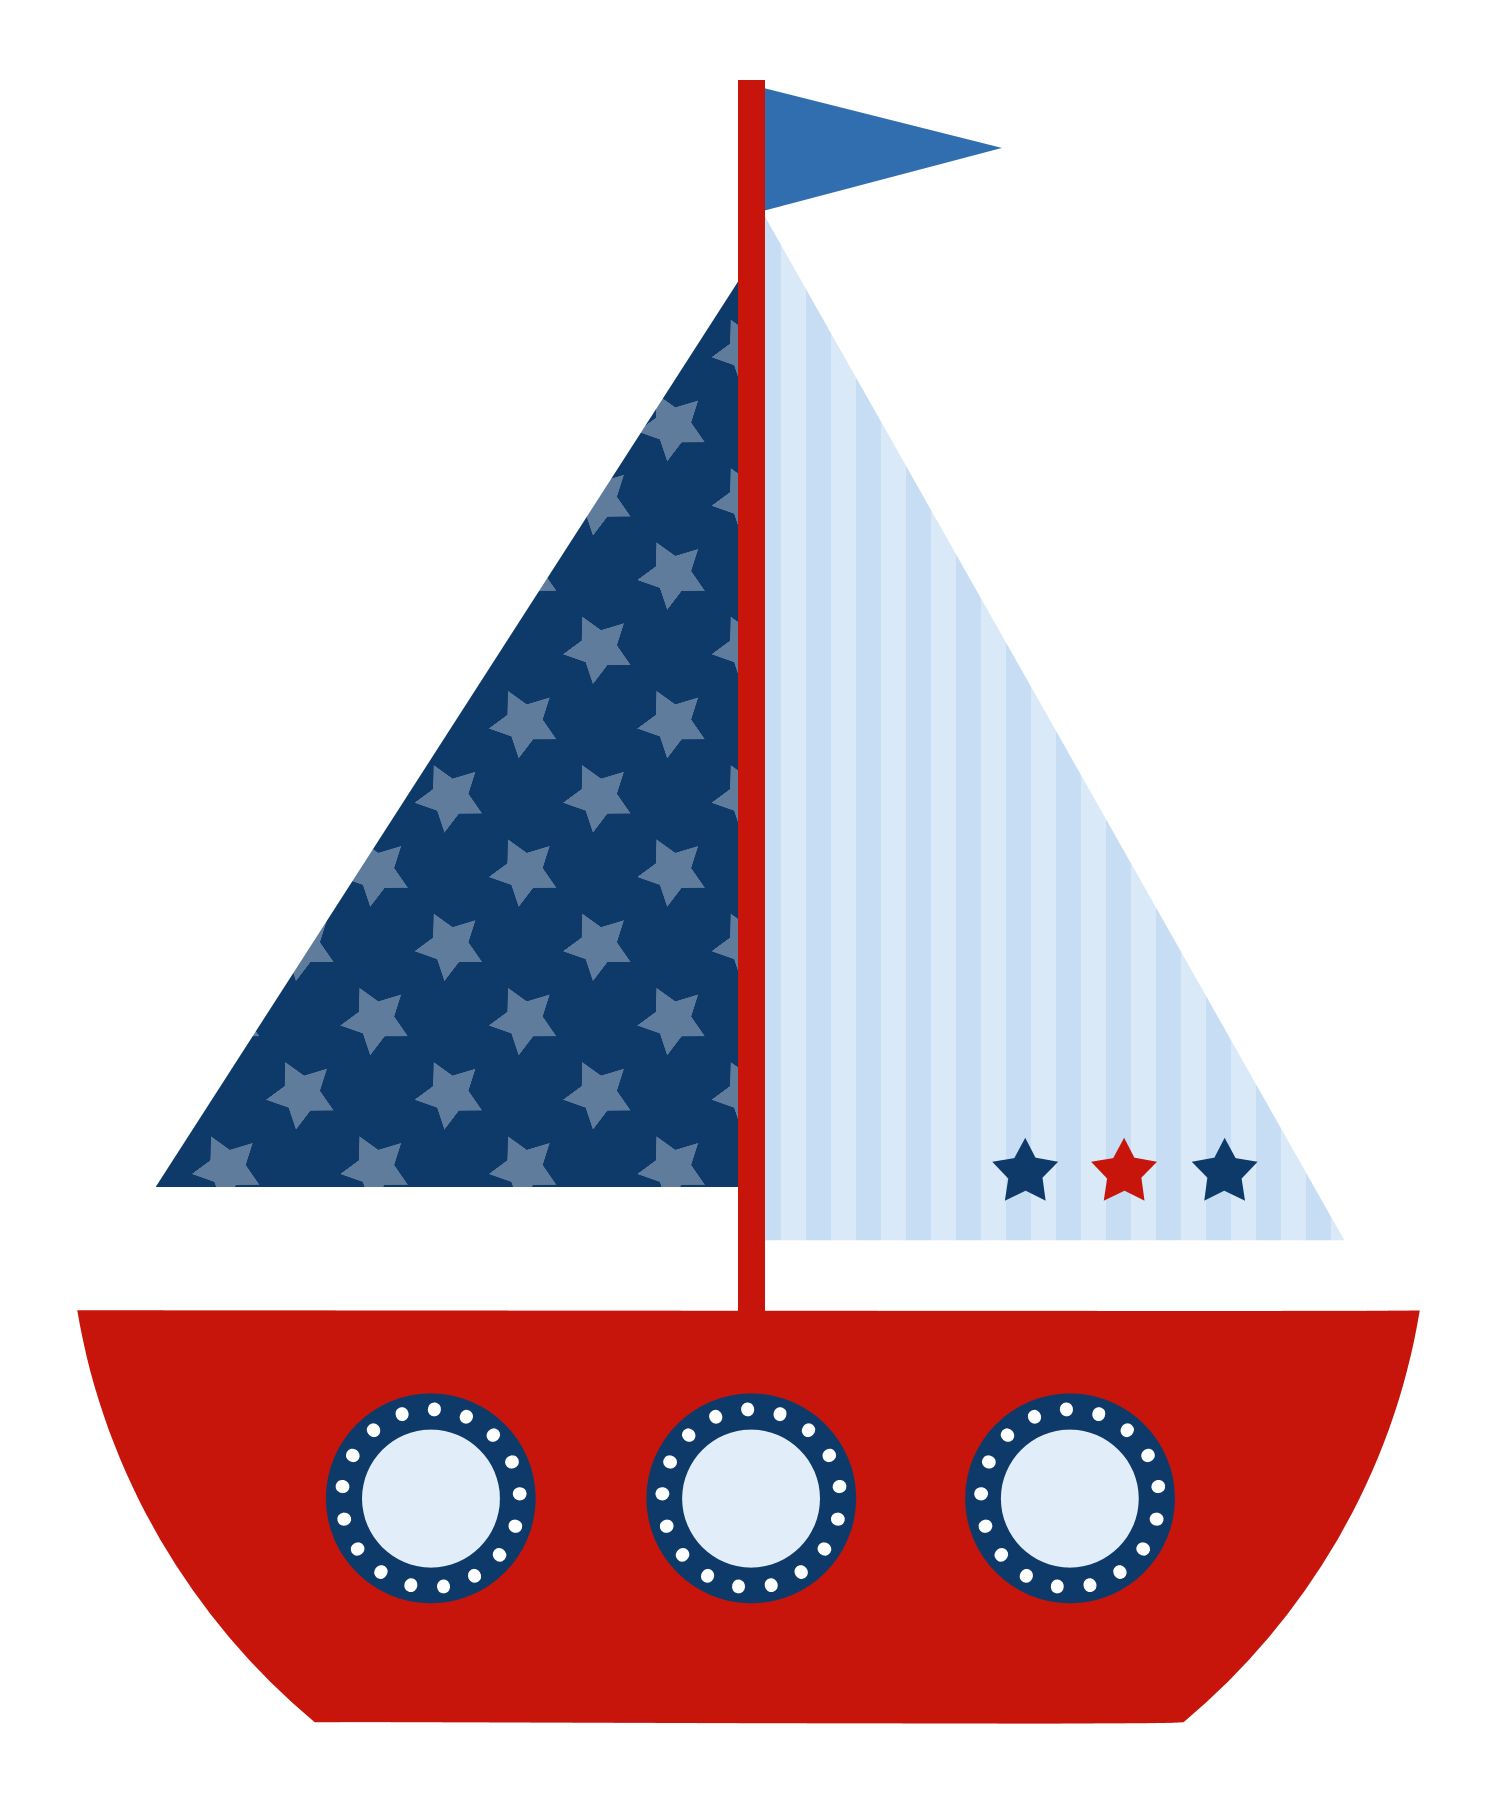 jpg download Yacht clipart party boat. Marinheiro png minus a